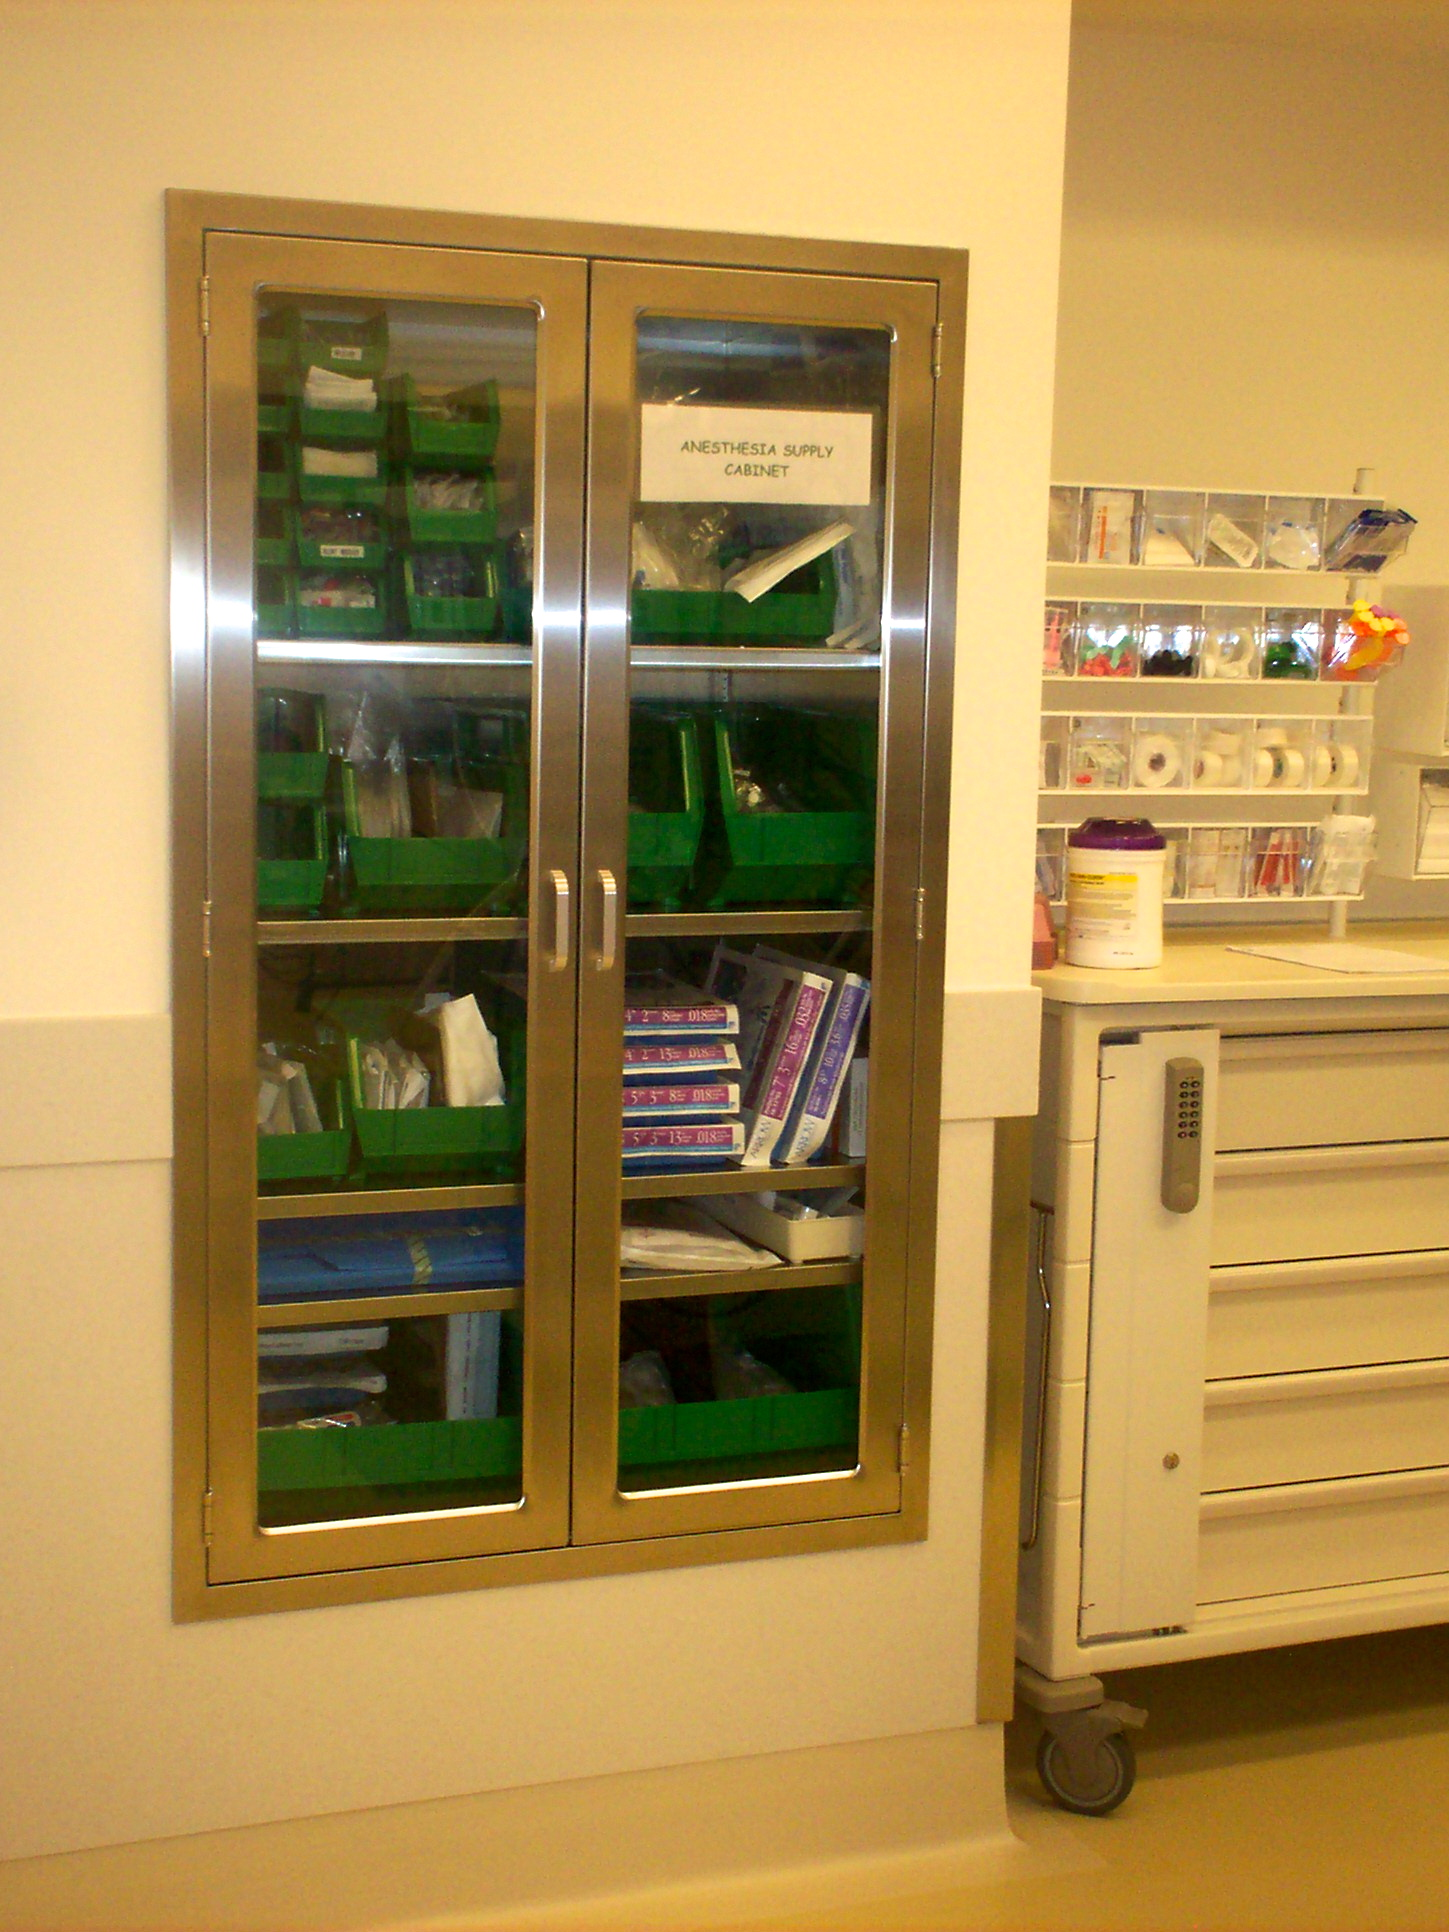 Endoscopy Room Design: Anesthesia Supply Cabinet For Operating Room